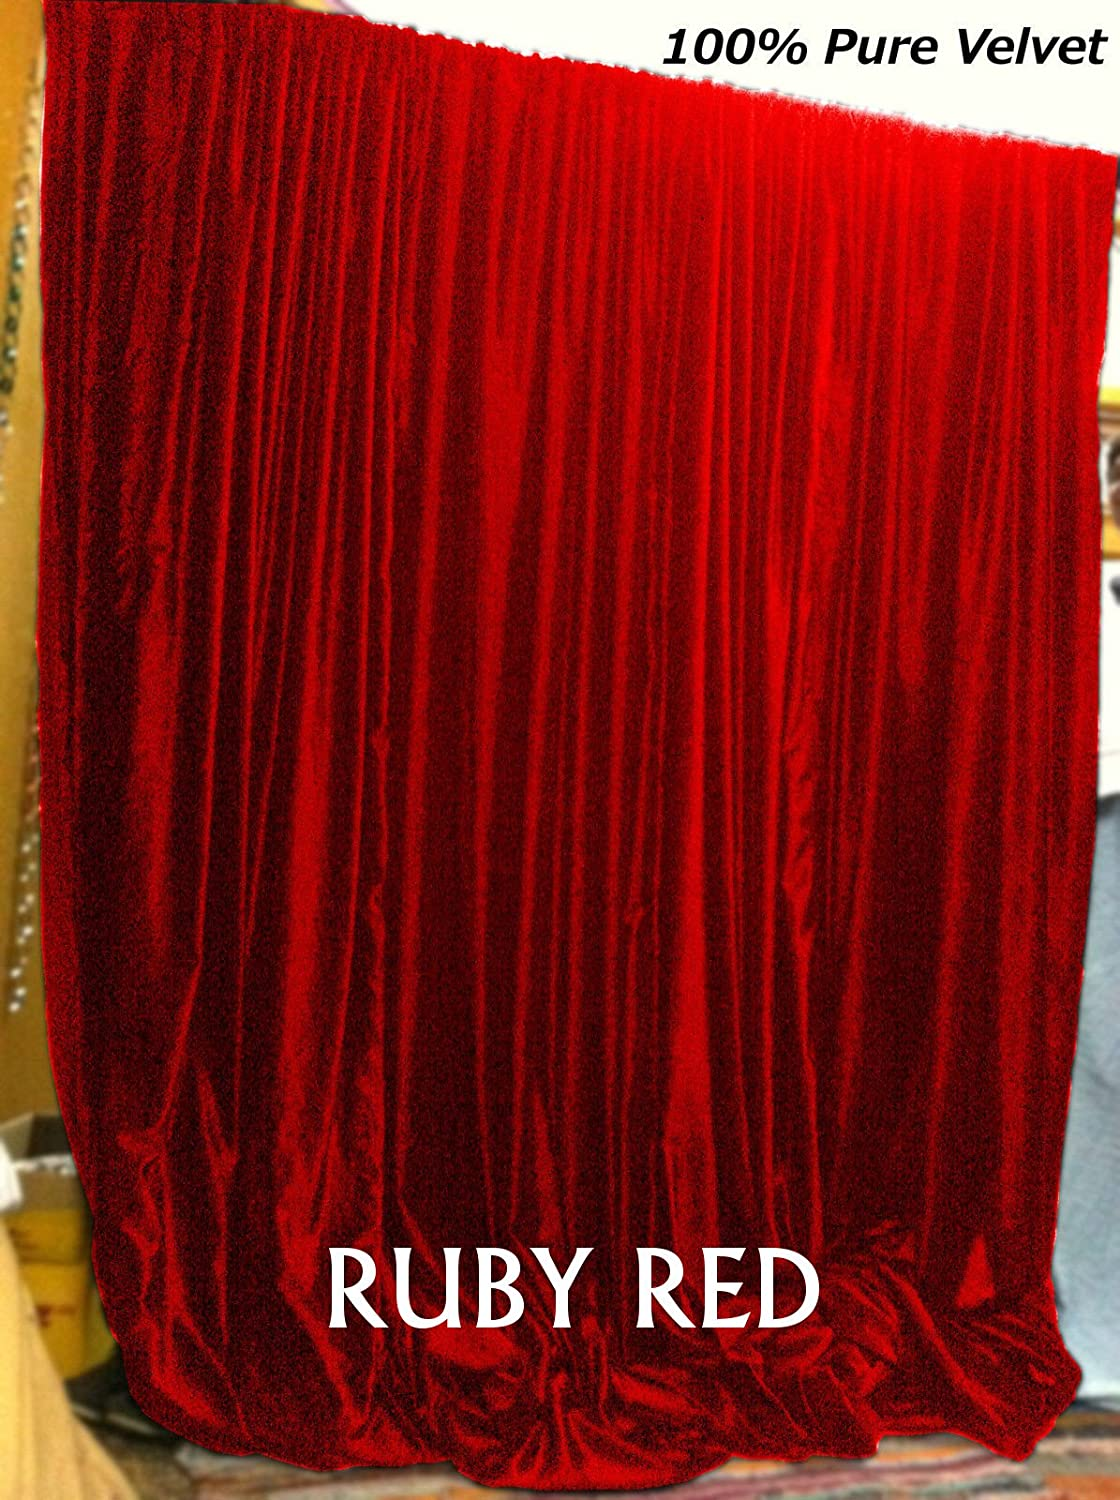 Amazon.com: New RUBY Red Velvet Curtains Backstage/CHURCH/ THEATER/SCHOOl  108 W by 108 H inches, NON PLEATED, LINED CURTAINS DRAPES 1 PANEL: Home &  Kitchen - Amazon.com: New RUBY Red Velvet Curtains Backstage/CHURCH/ THEATER